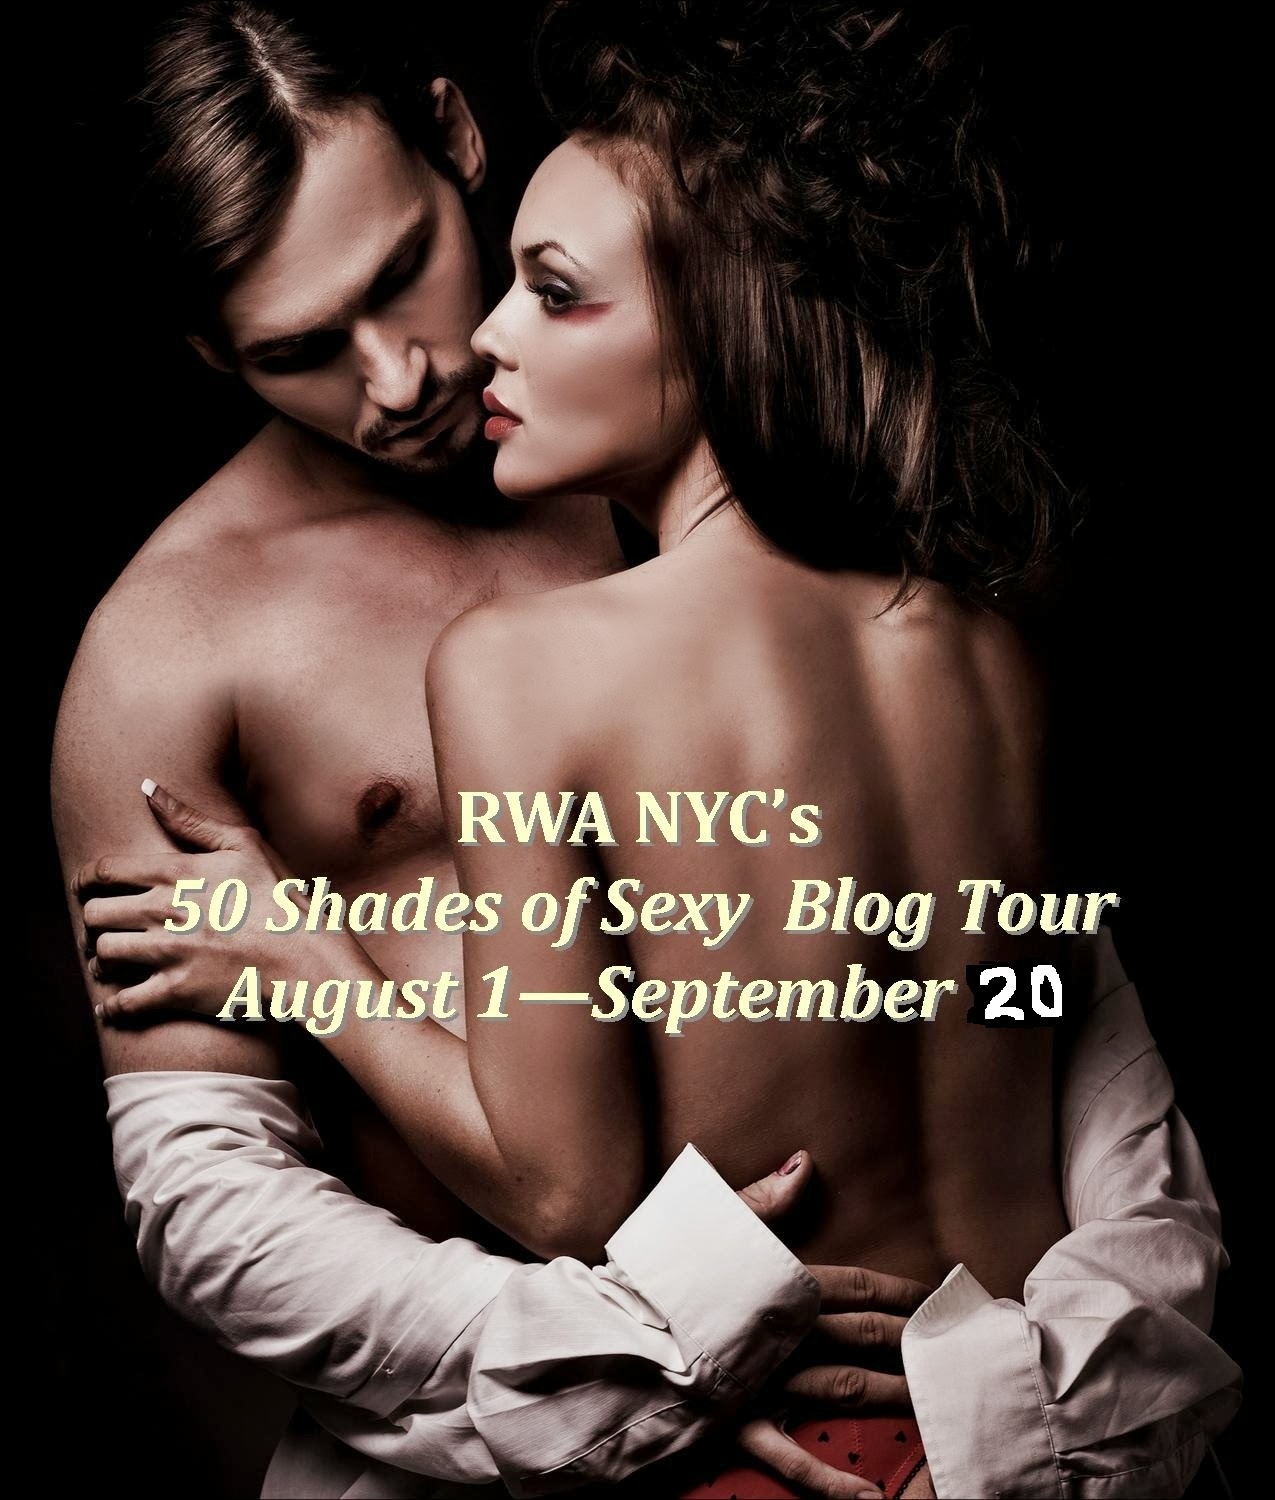 50 Shades of Sexy Blog Tour (2013)